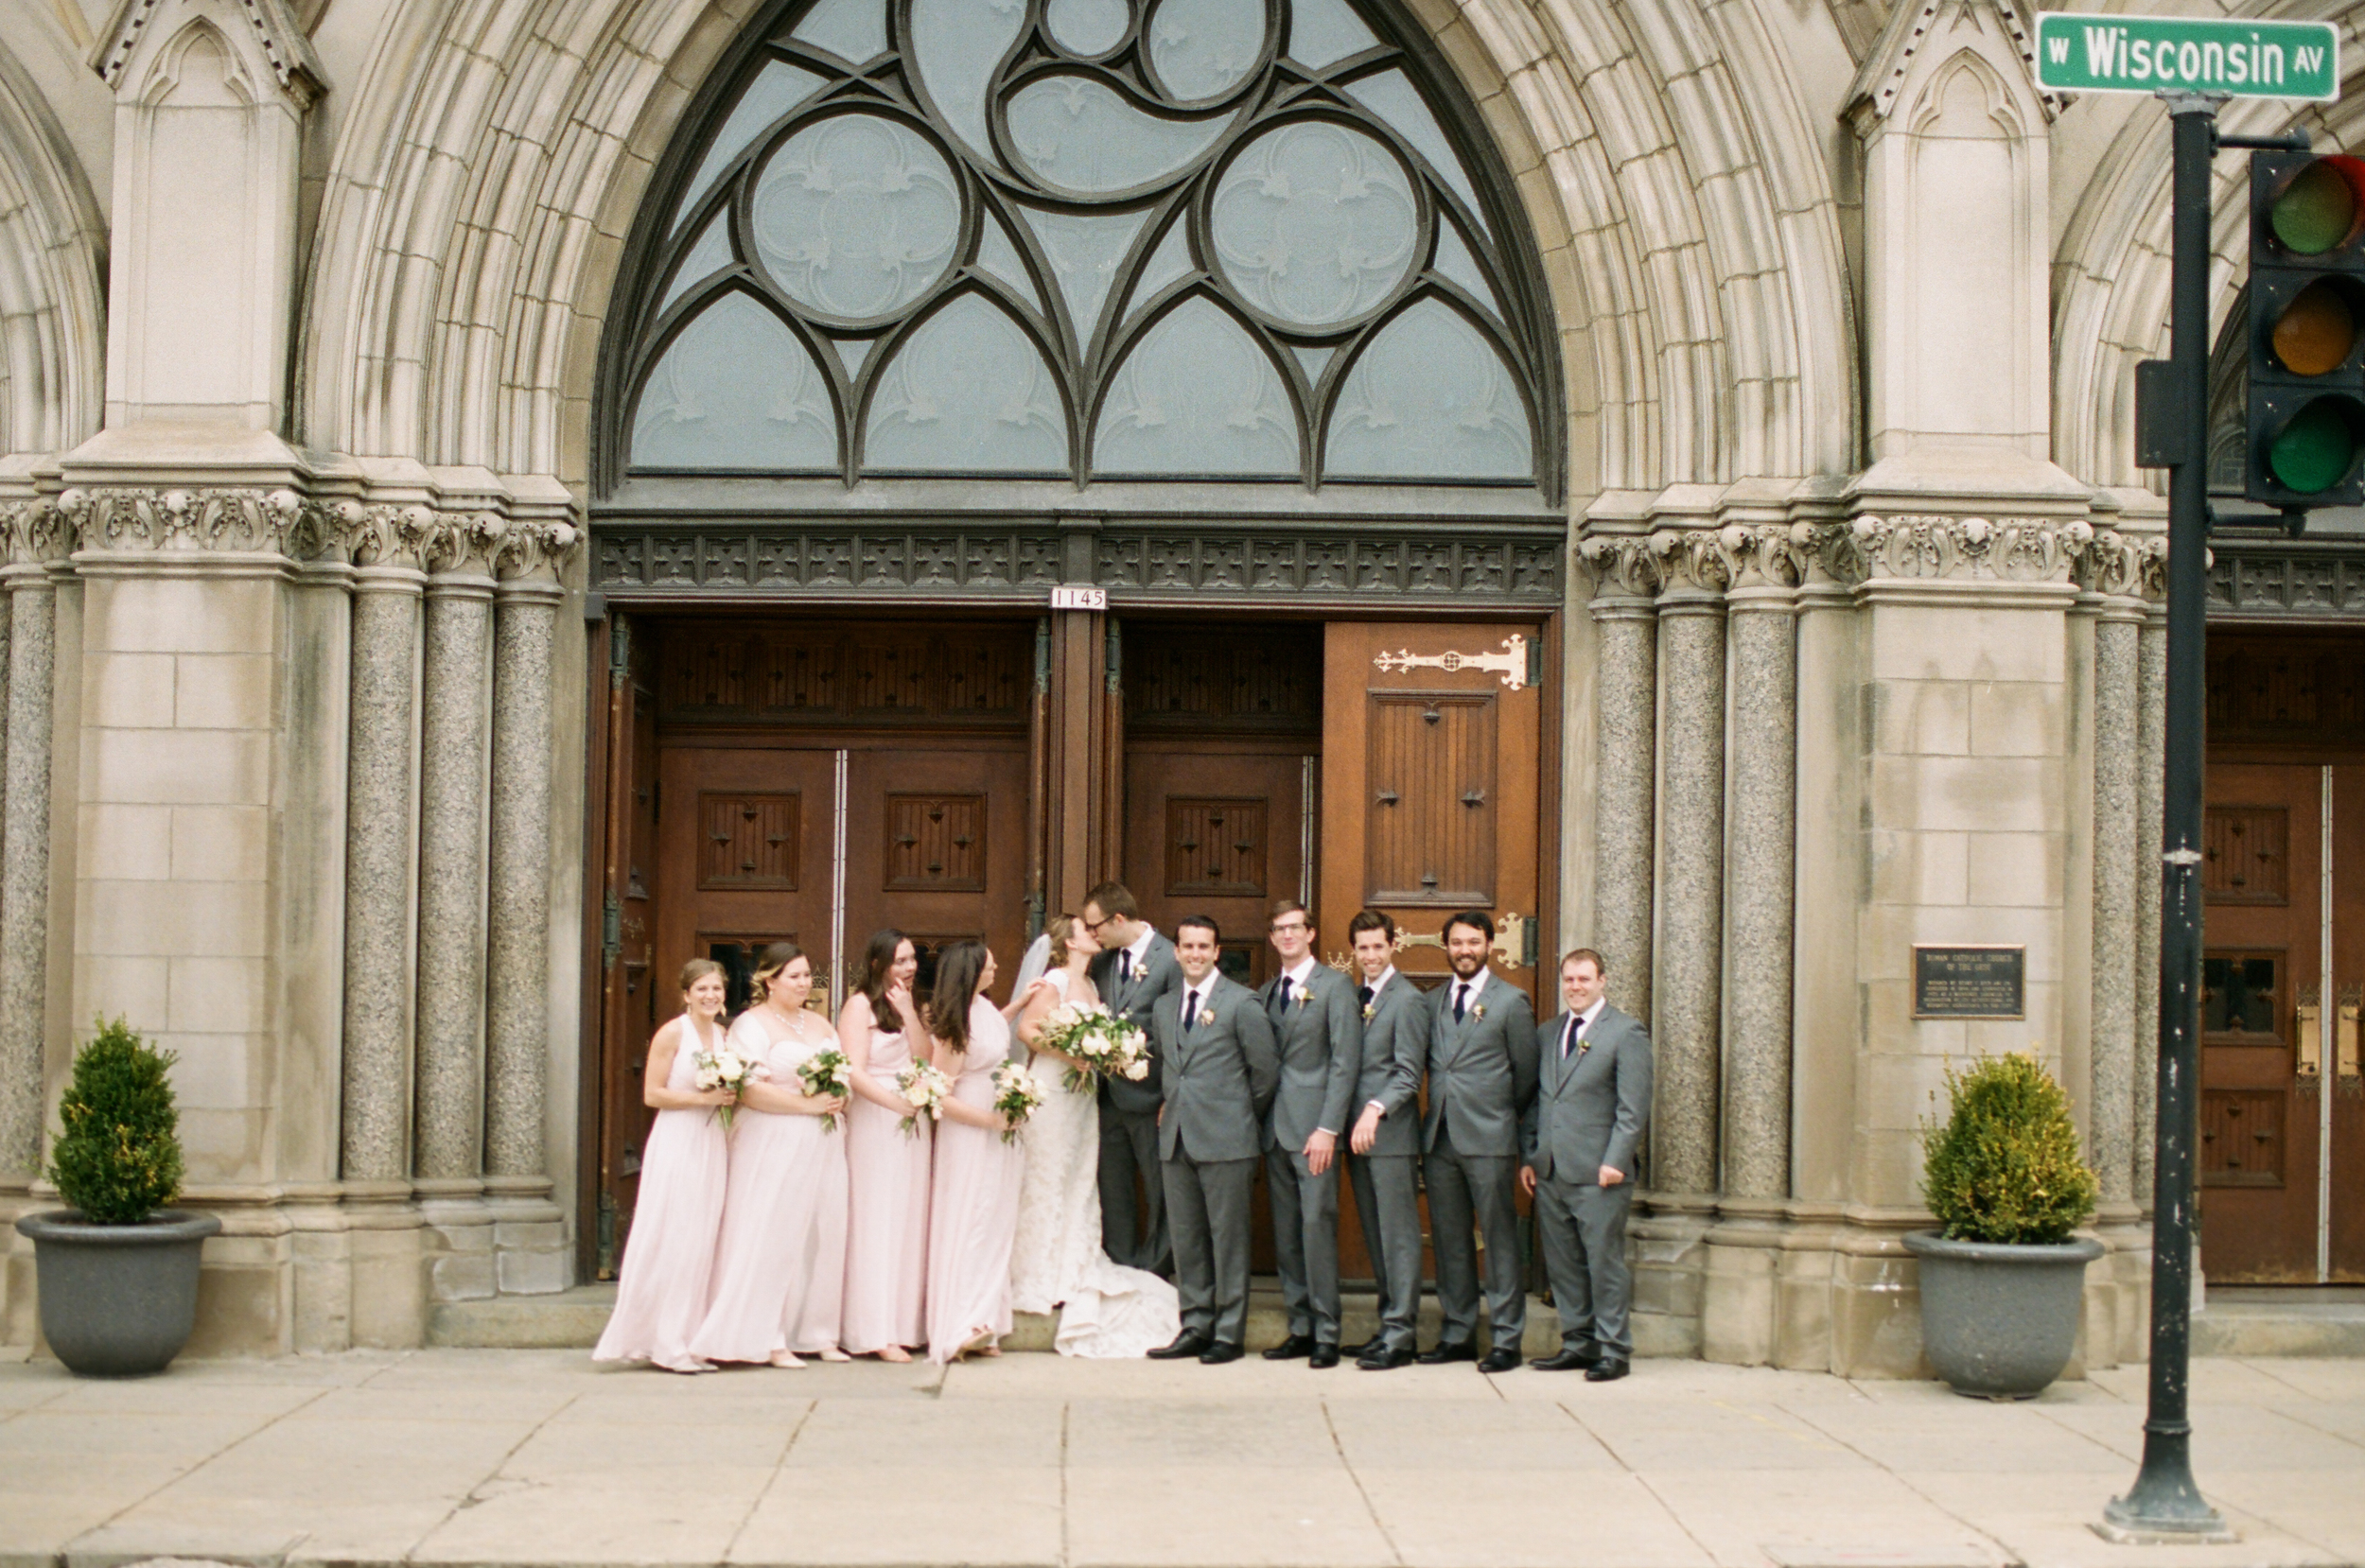 kateweinsteinphoto_jessica_sean_wedding122.jpg